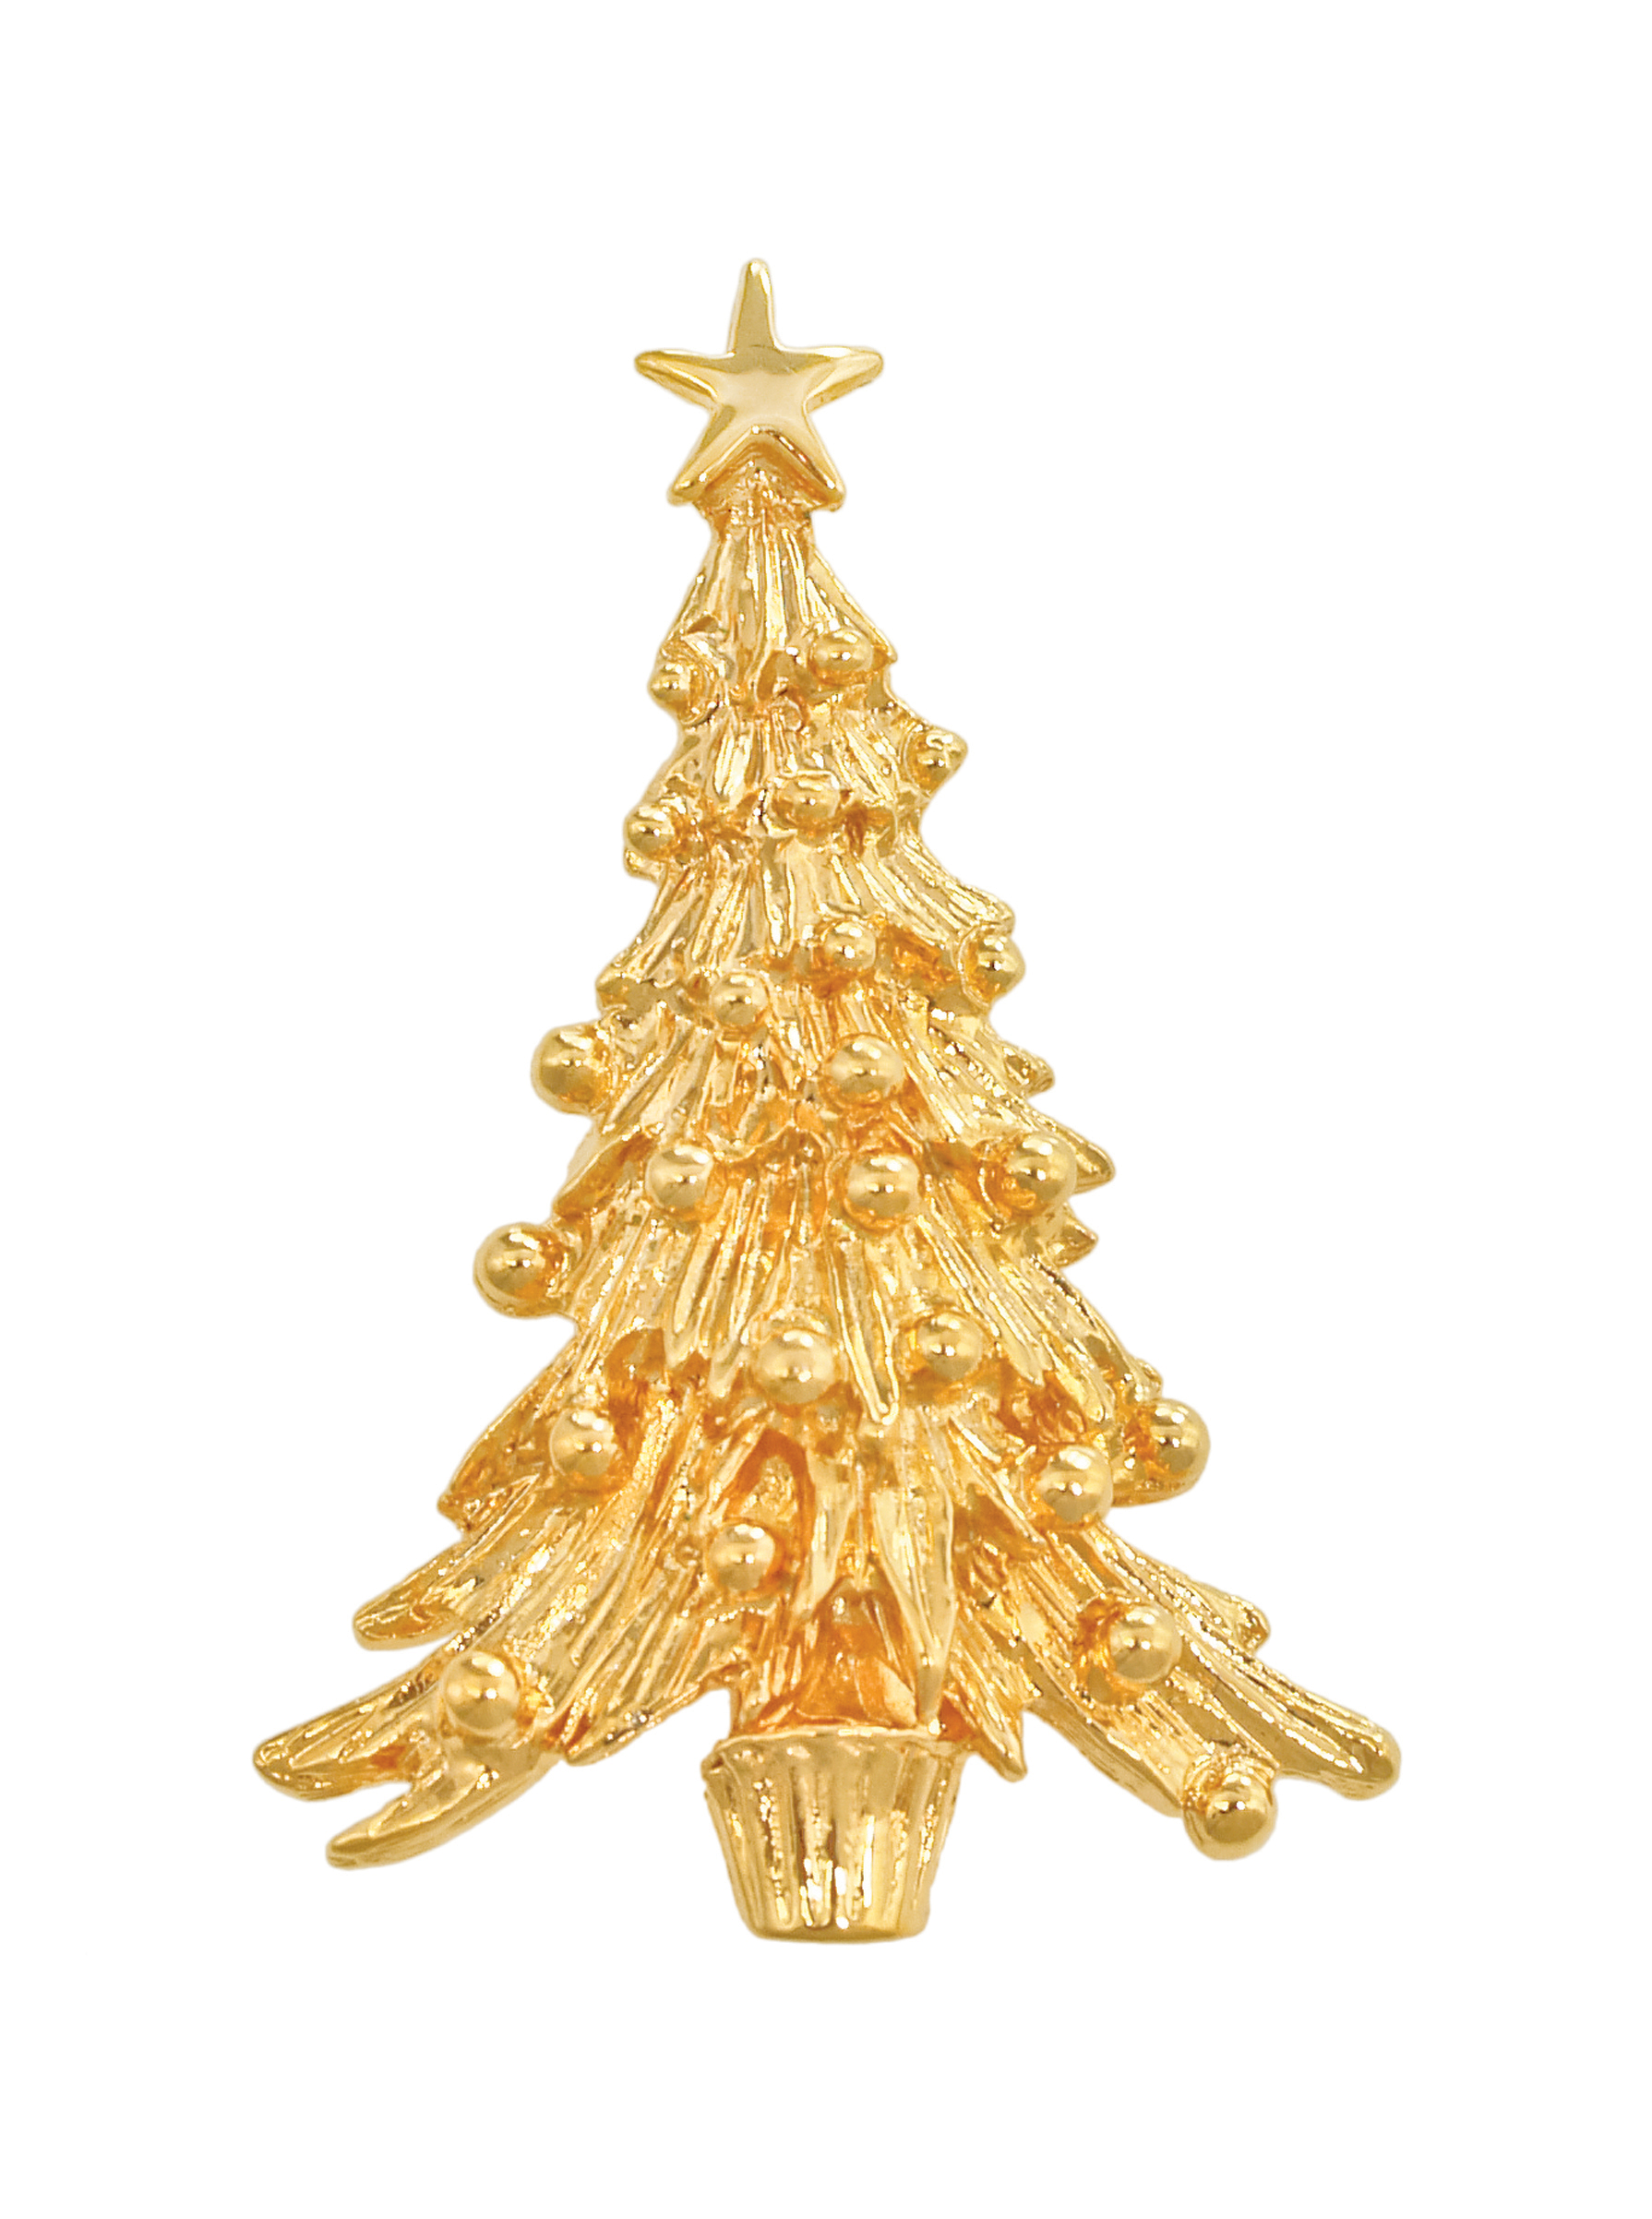 Napier Jewelry Christmas Pins and Christmas Tree - The Napier Book ...